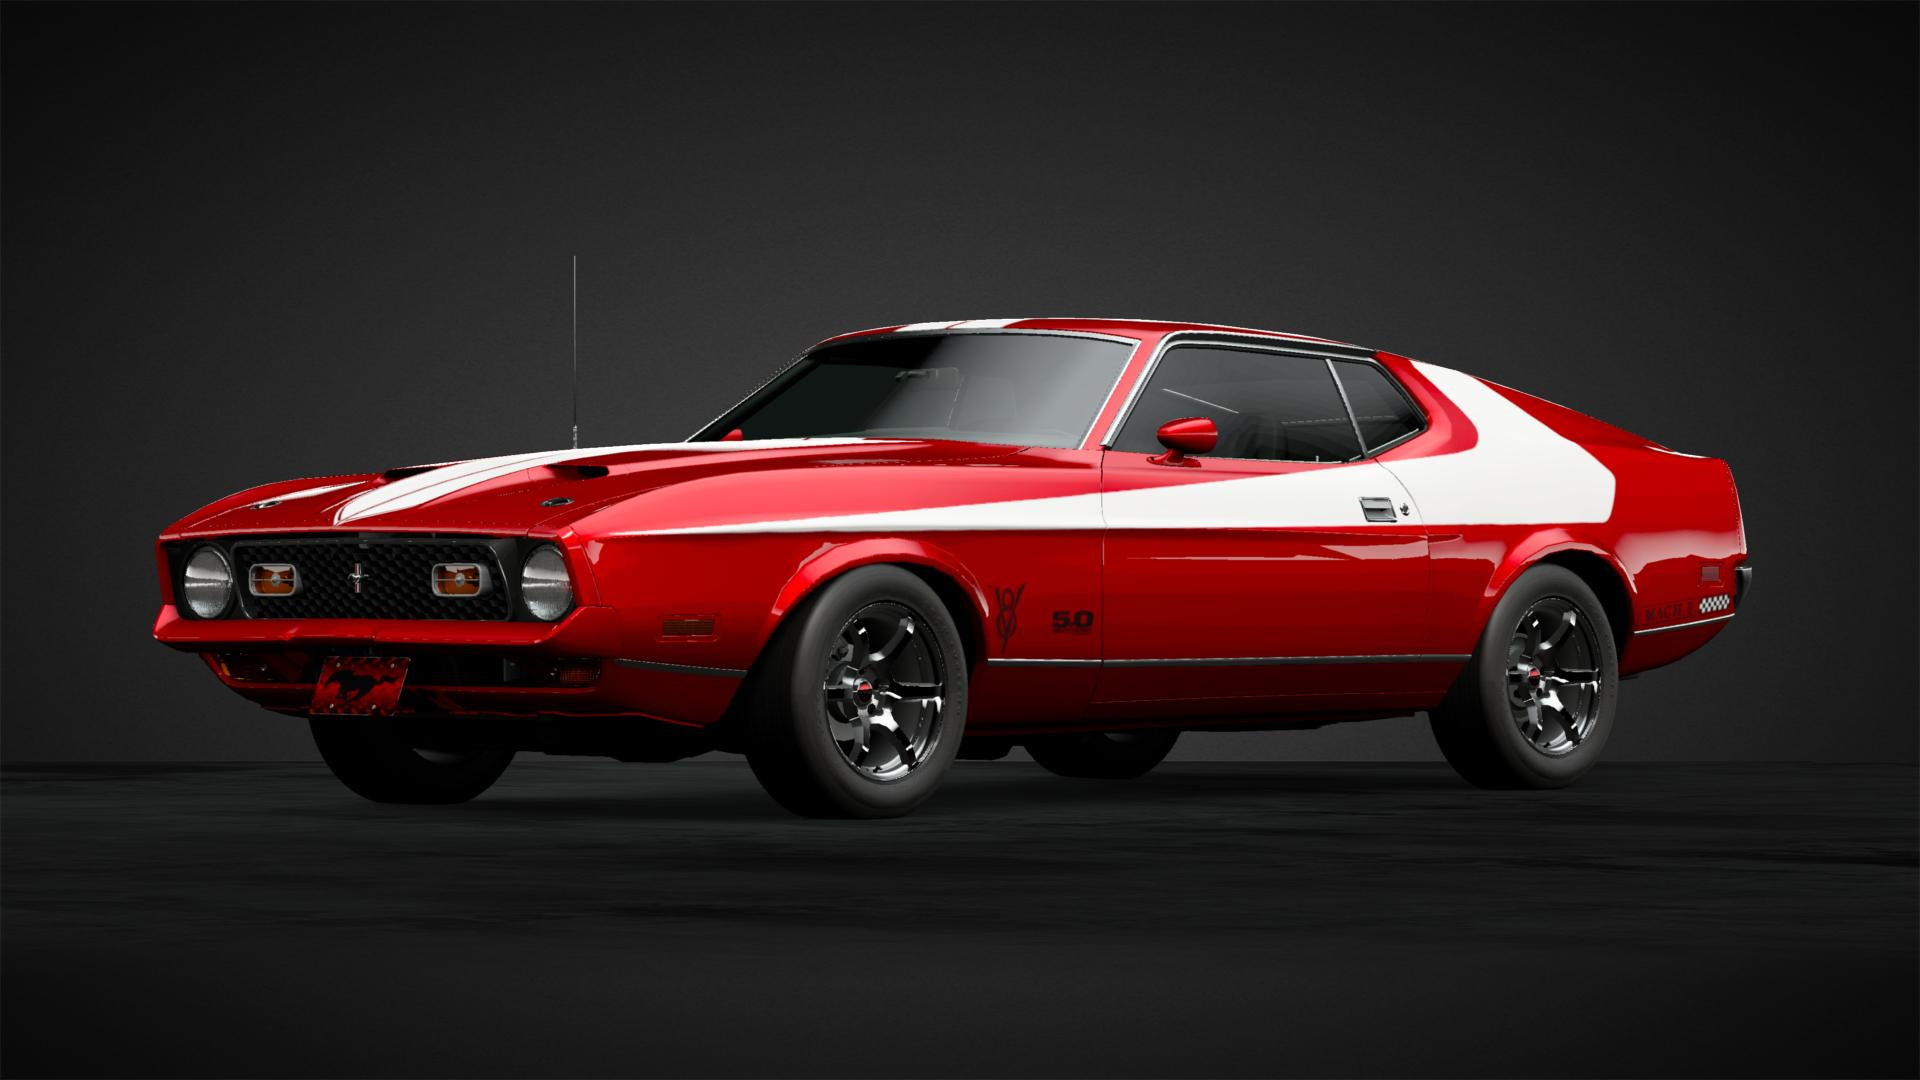 Mustang mach 1 car livery by coyote 74u community gran turismo sport